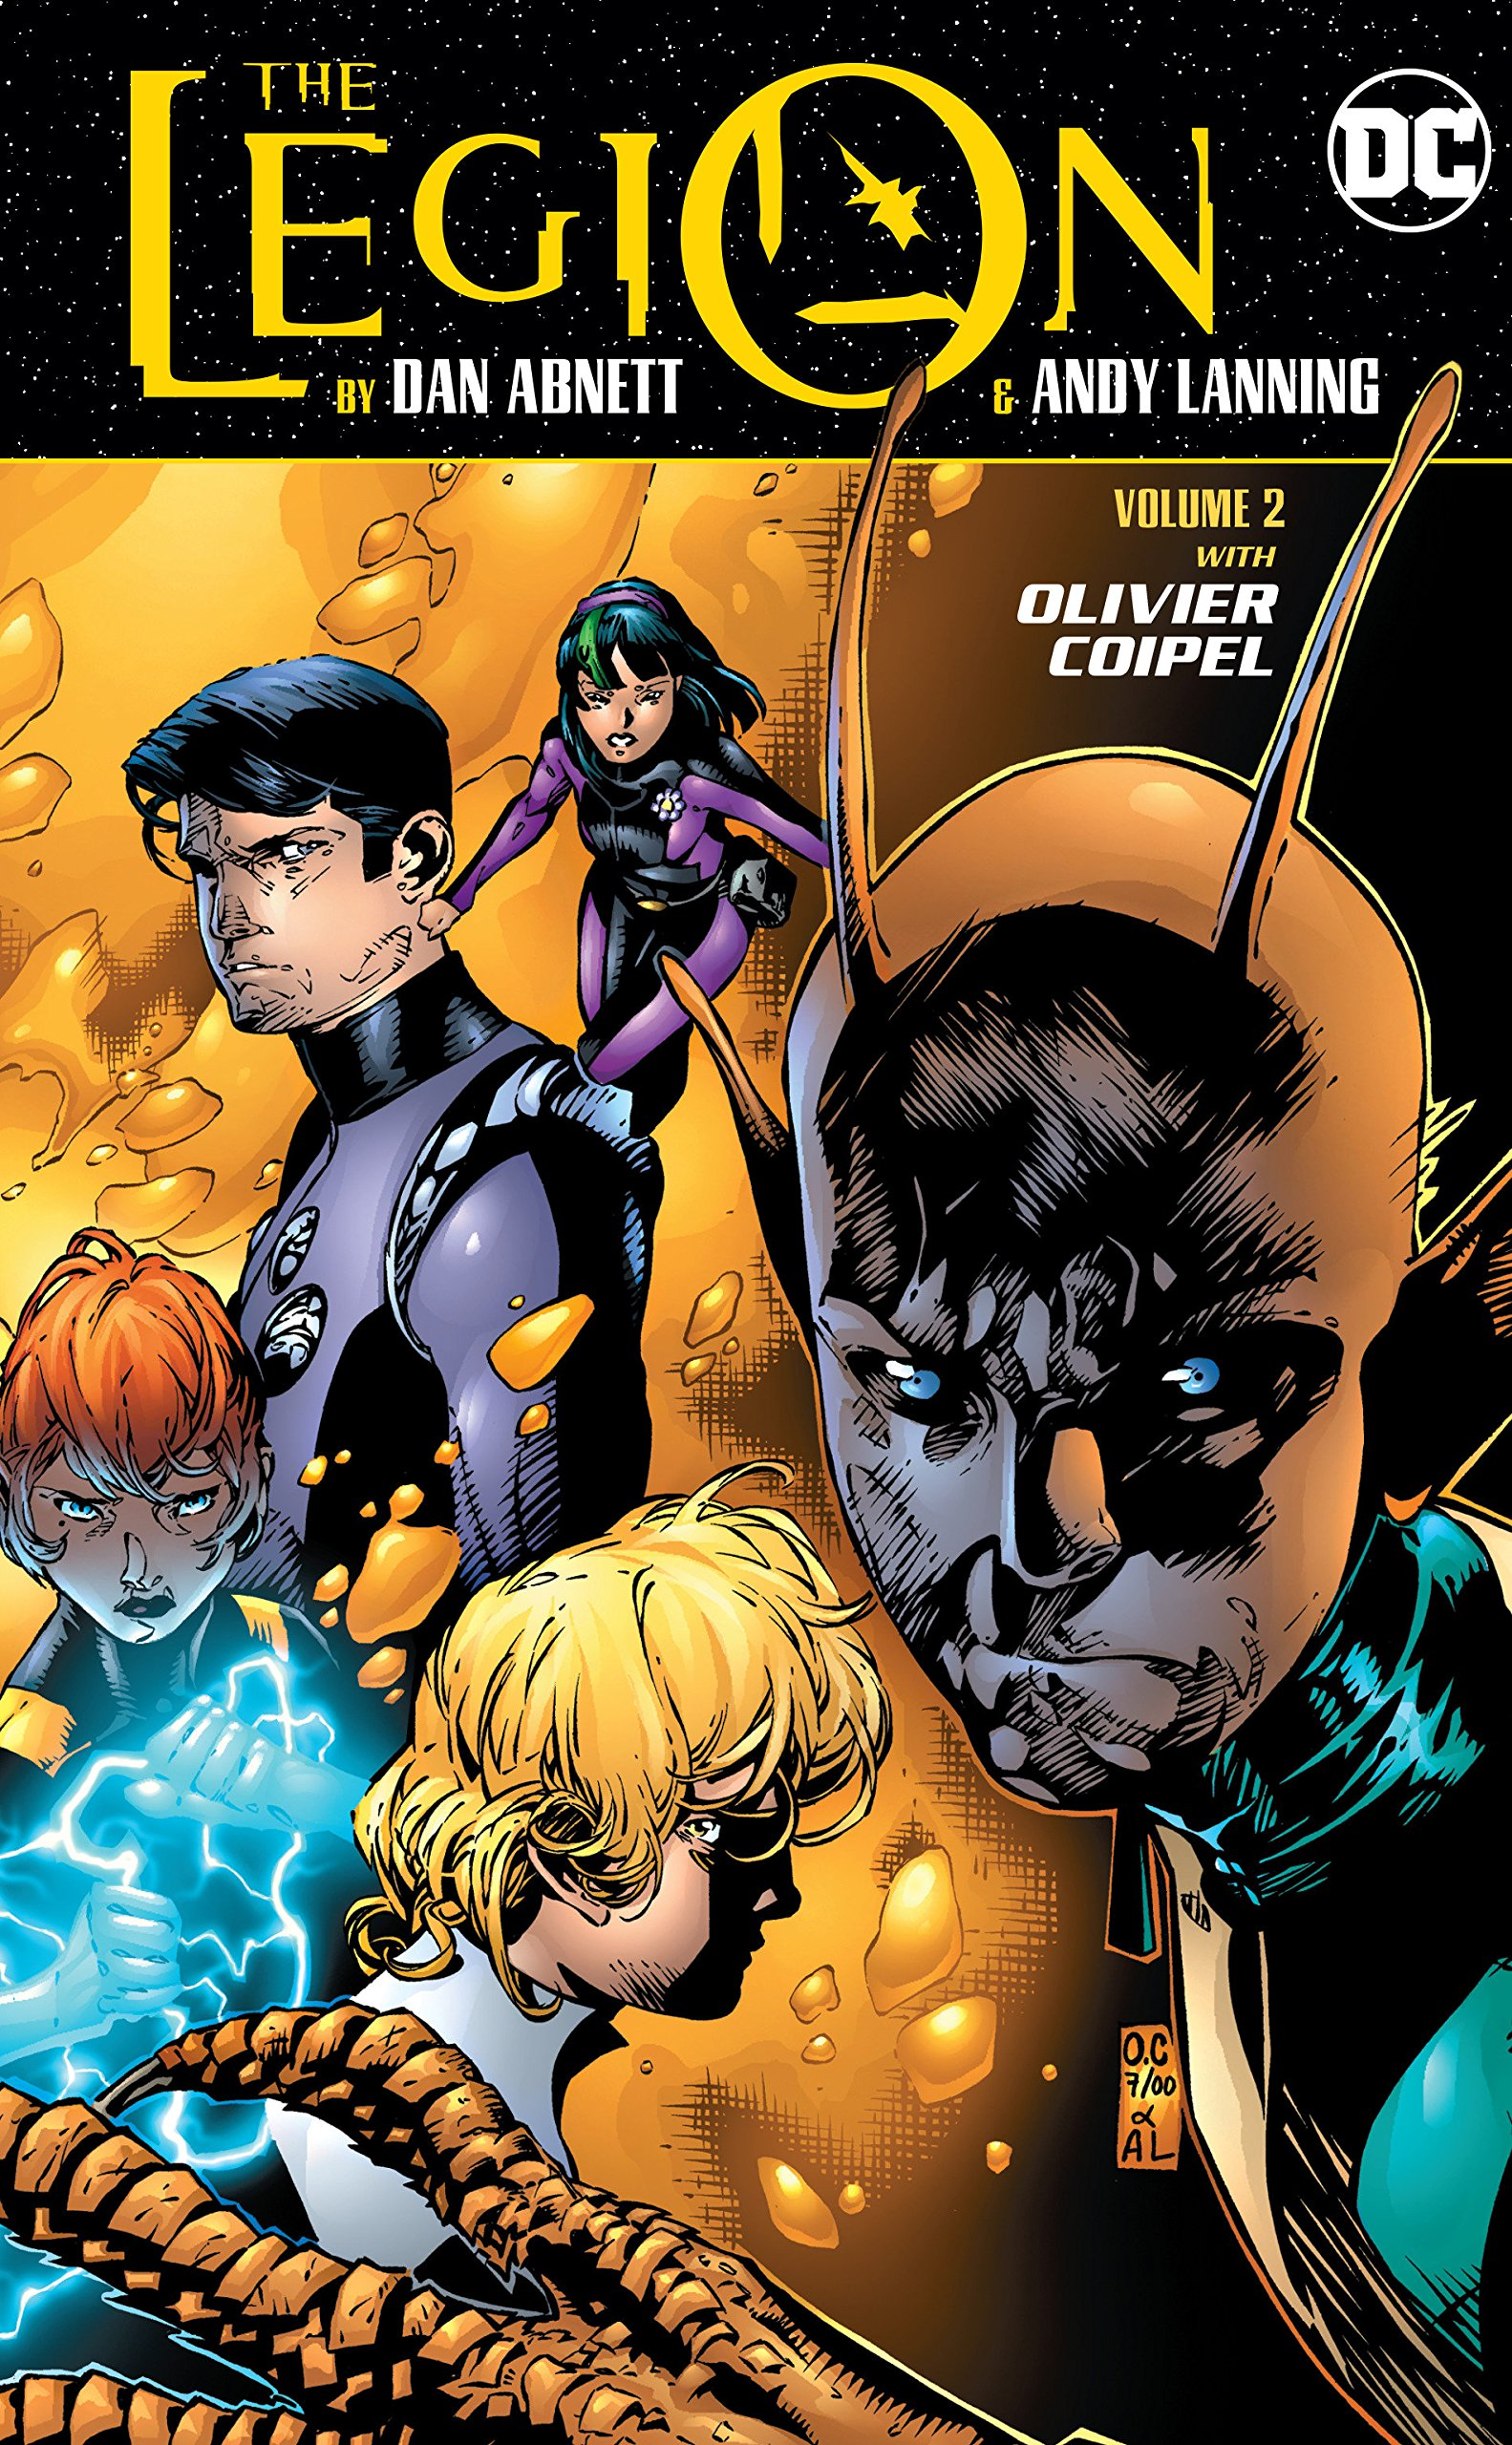 Read Online The Legion by Dan Abnett and Andy Lanning Vol. 2 (The Legion by Dan Abnett & Andy Lanning) PDF